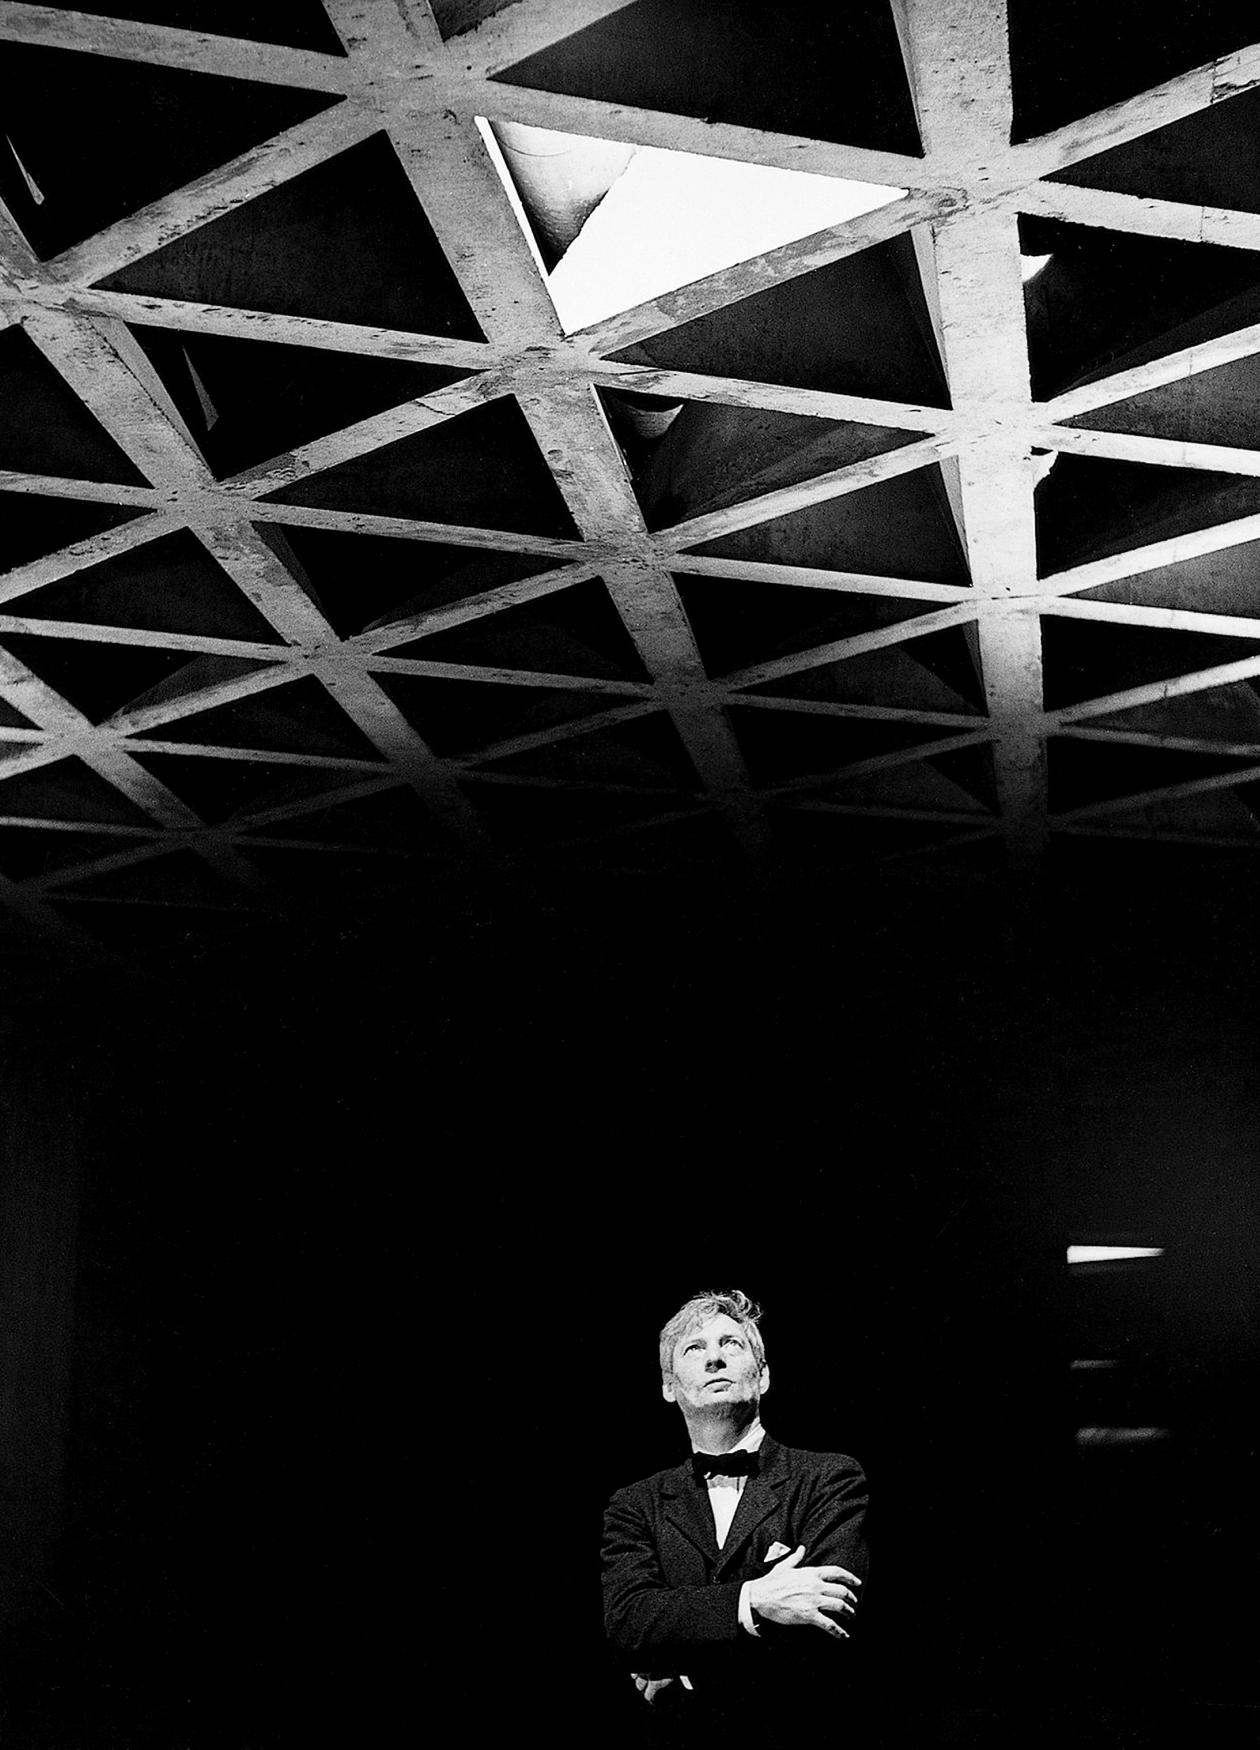 Black and white photo of Louis Kahn standing in a dark room, looking at a decorative ceiling.